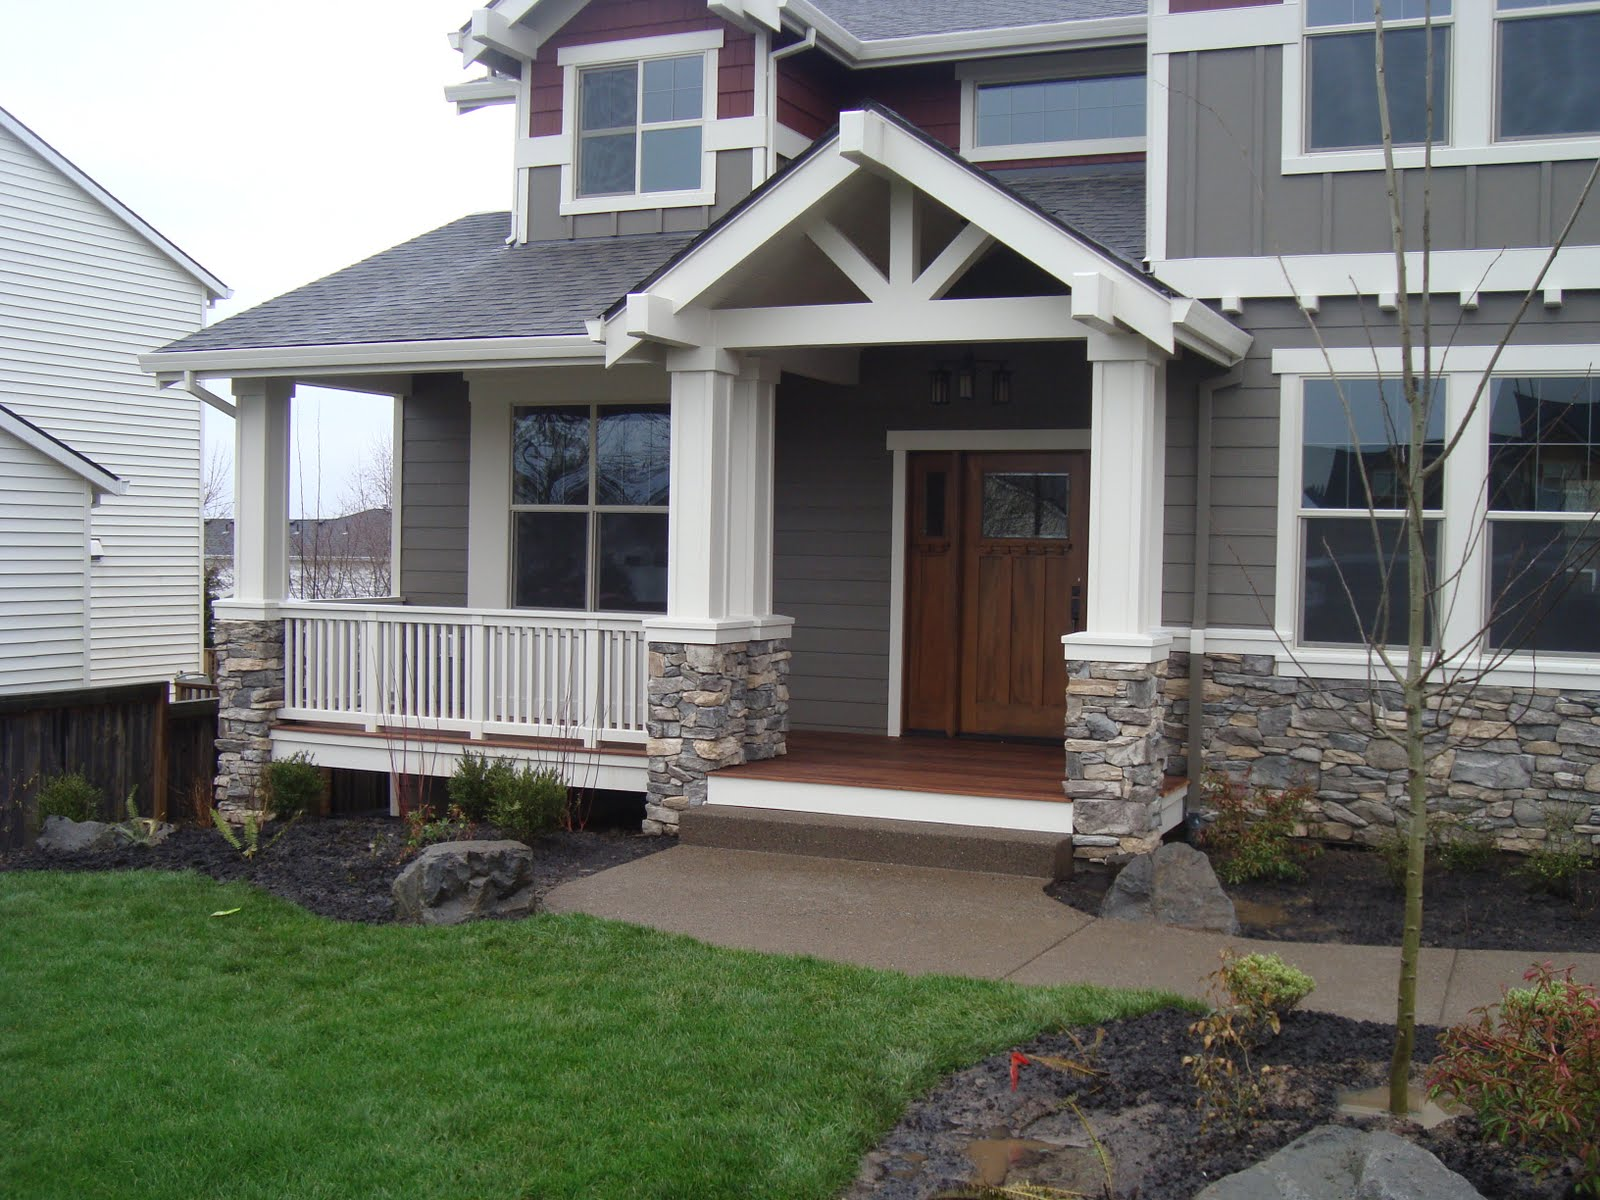 Halgren construction exterior stone veneer and deck Houses with stone facade